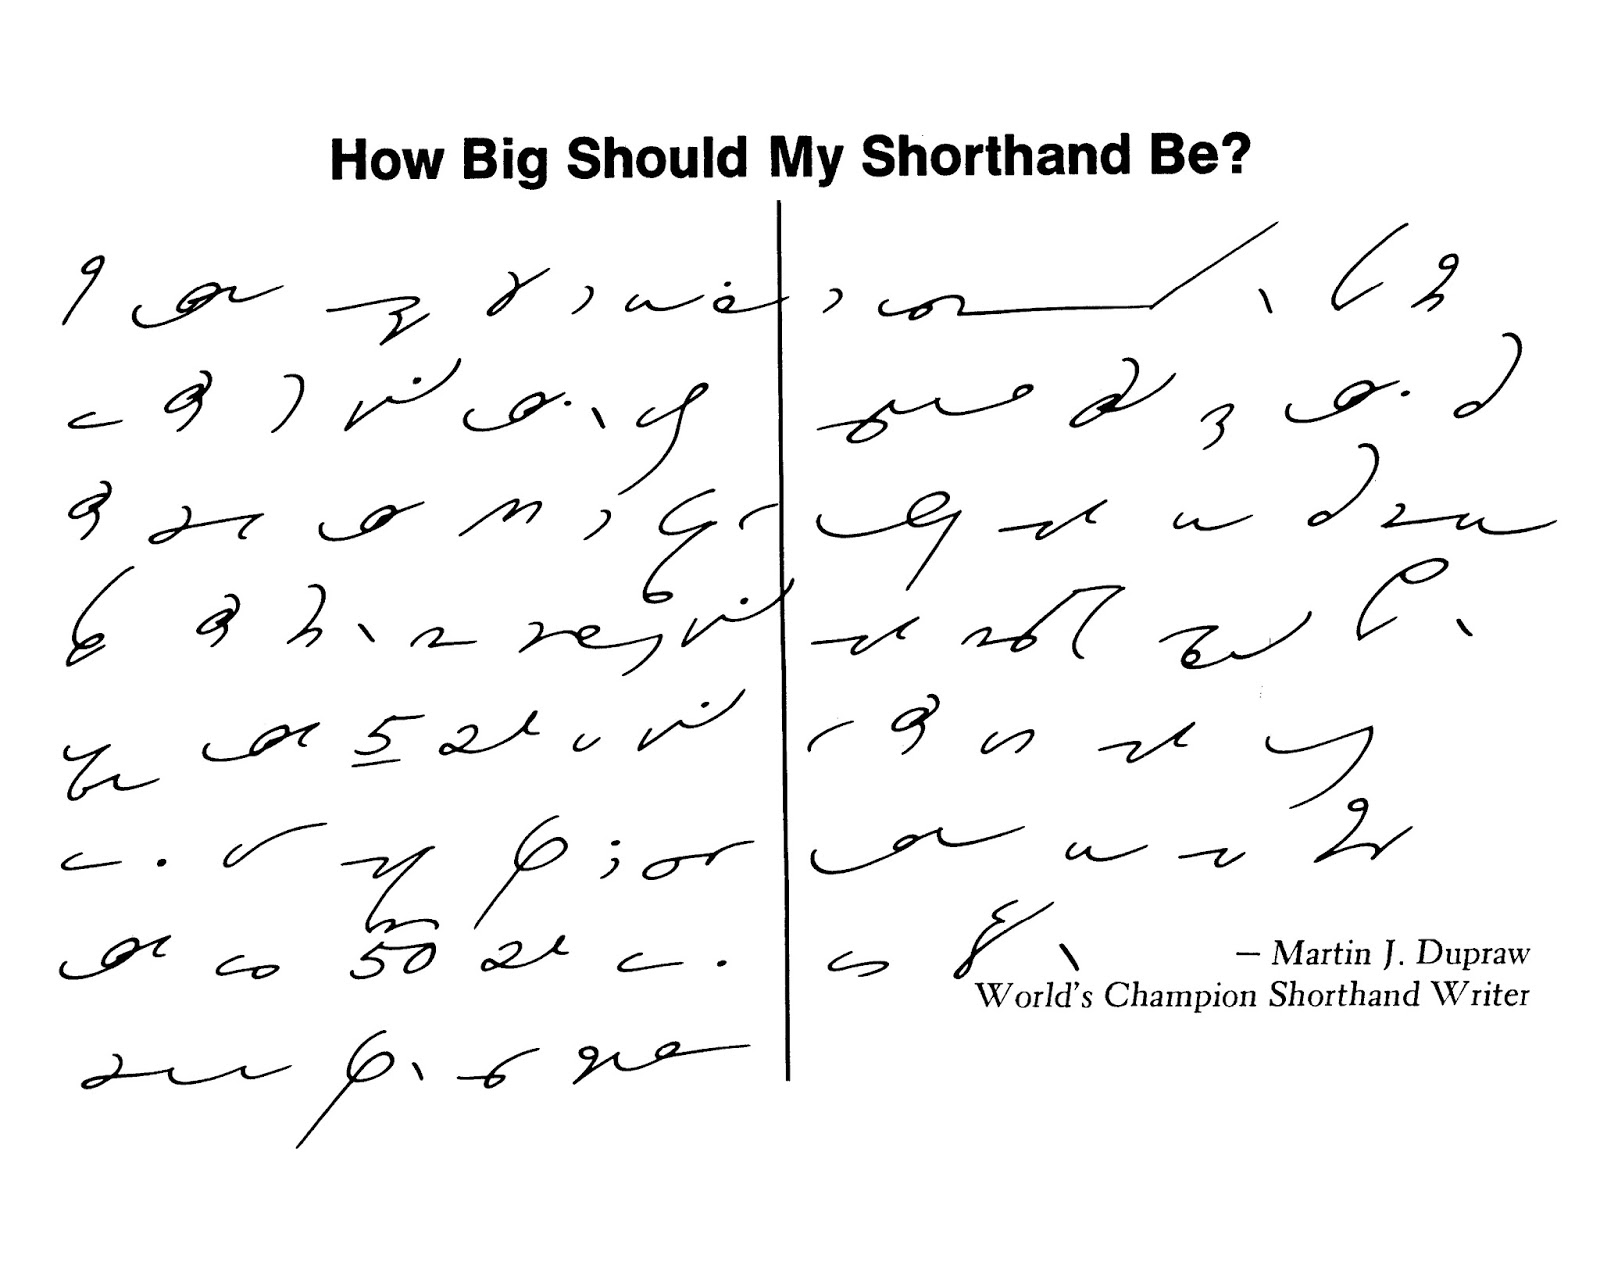 what is shorthand writing This is a shorthand which uses only the lower case letters of the alphabet and saves 60% of the writing.